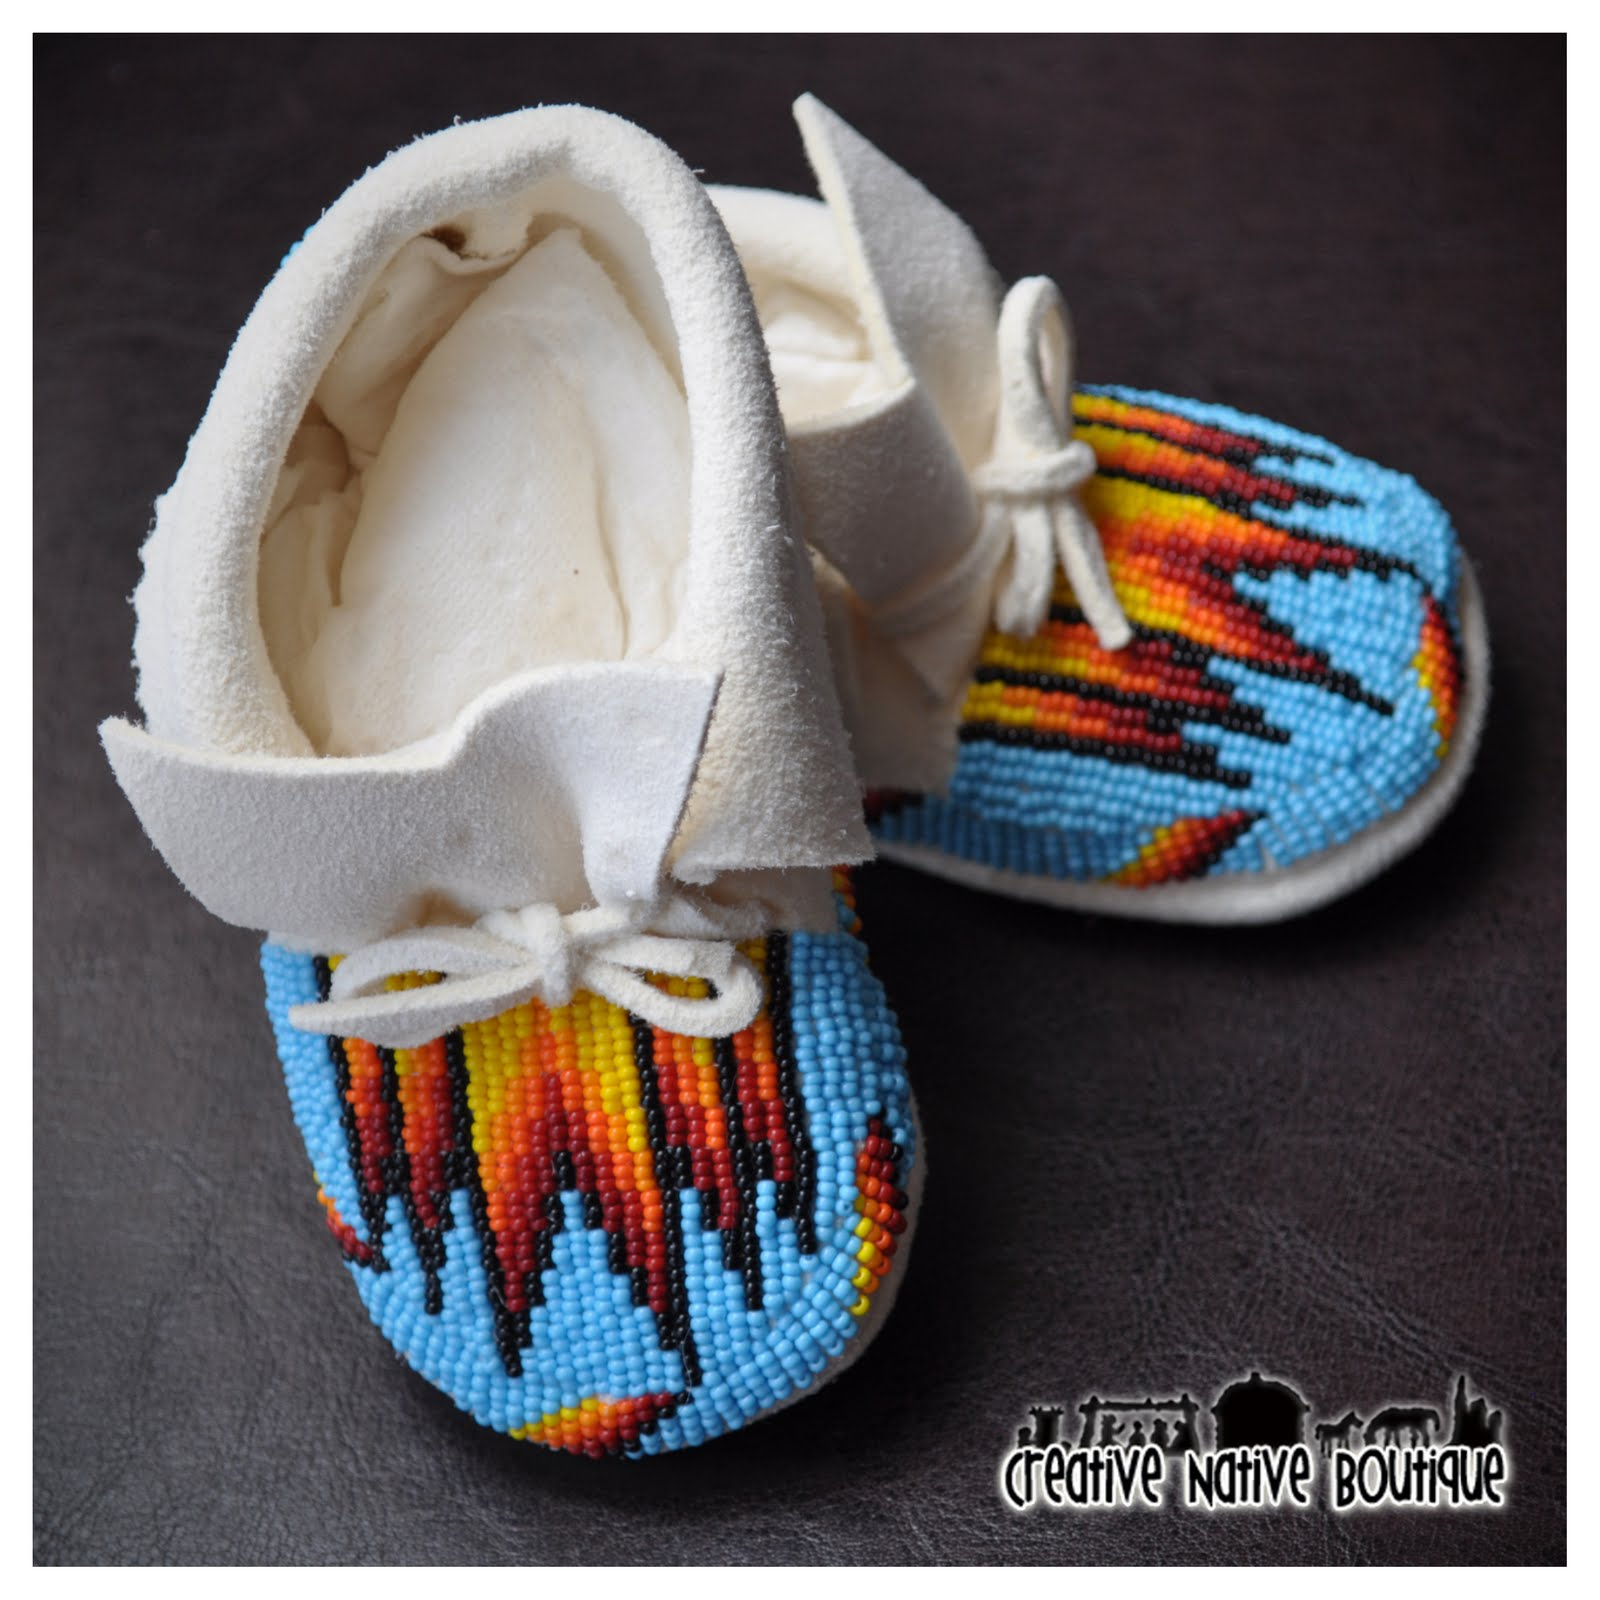 Creative native boutique turquoise blue baby moccasins